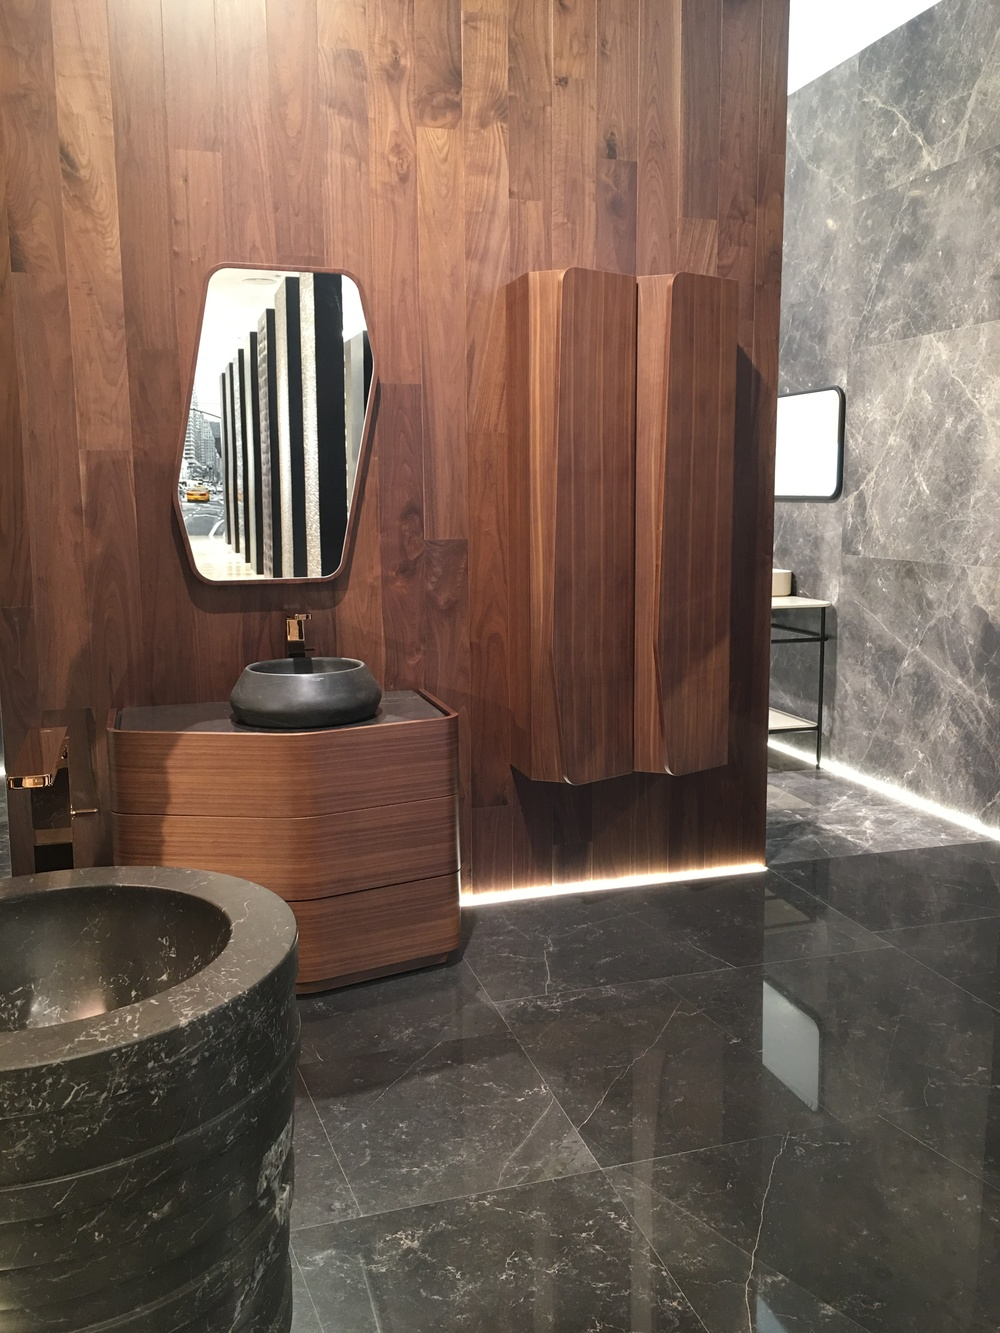 I loved the angled detailing in the bathroom furniture and accessories